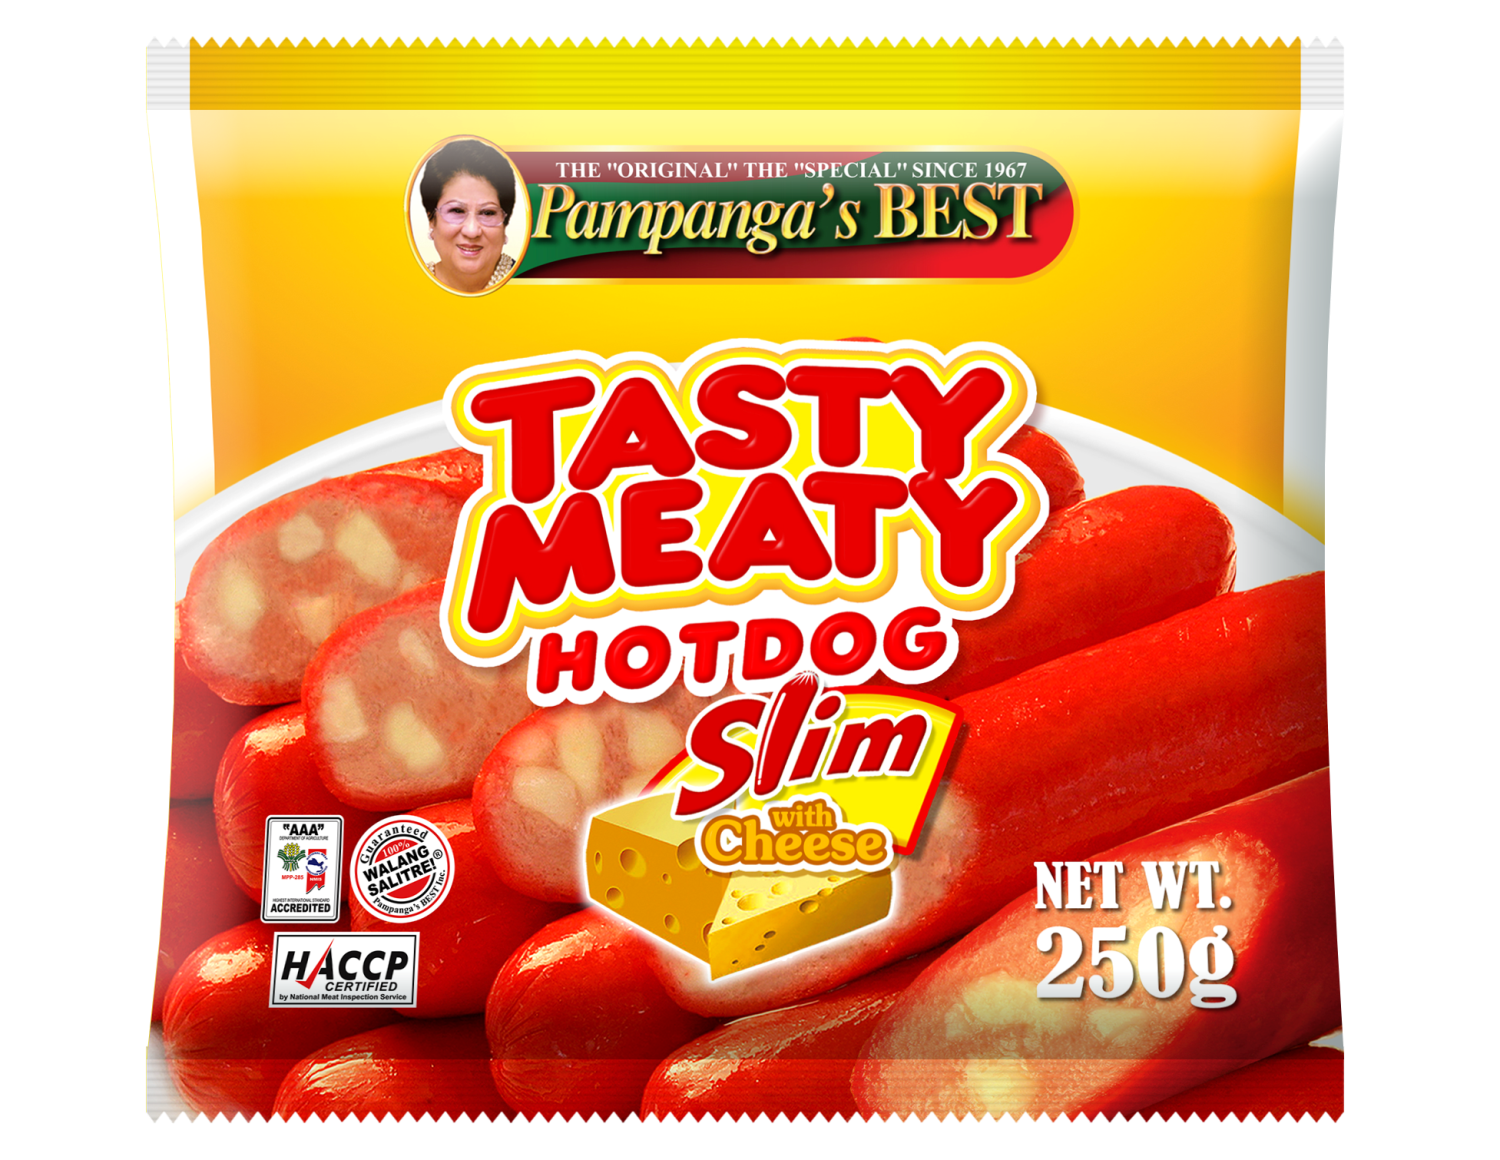 Tasty Meaty with Cheese Slim 250g